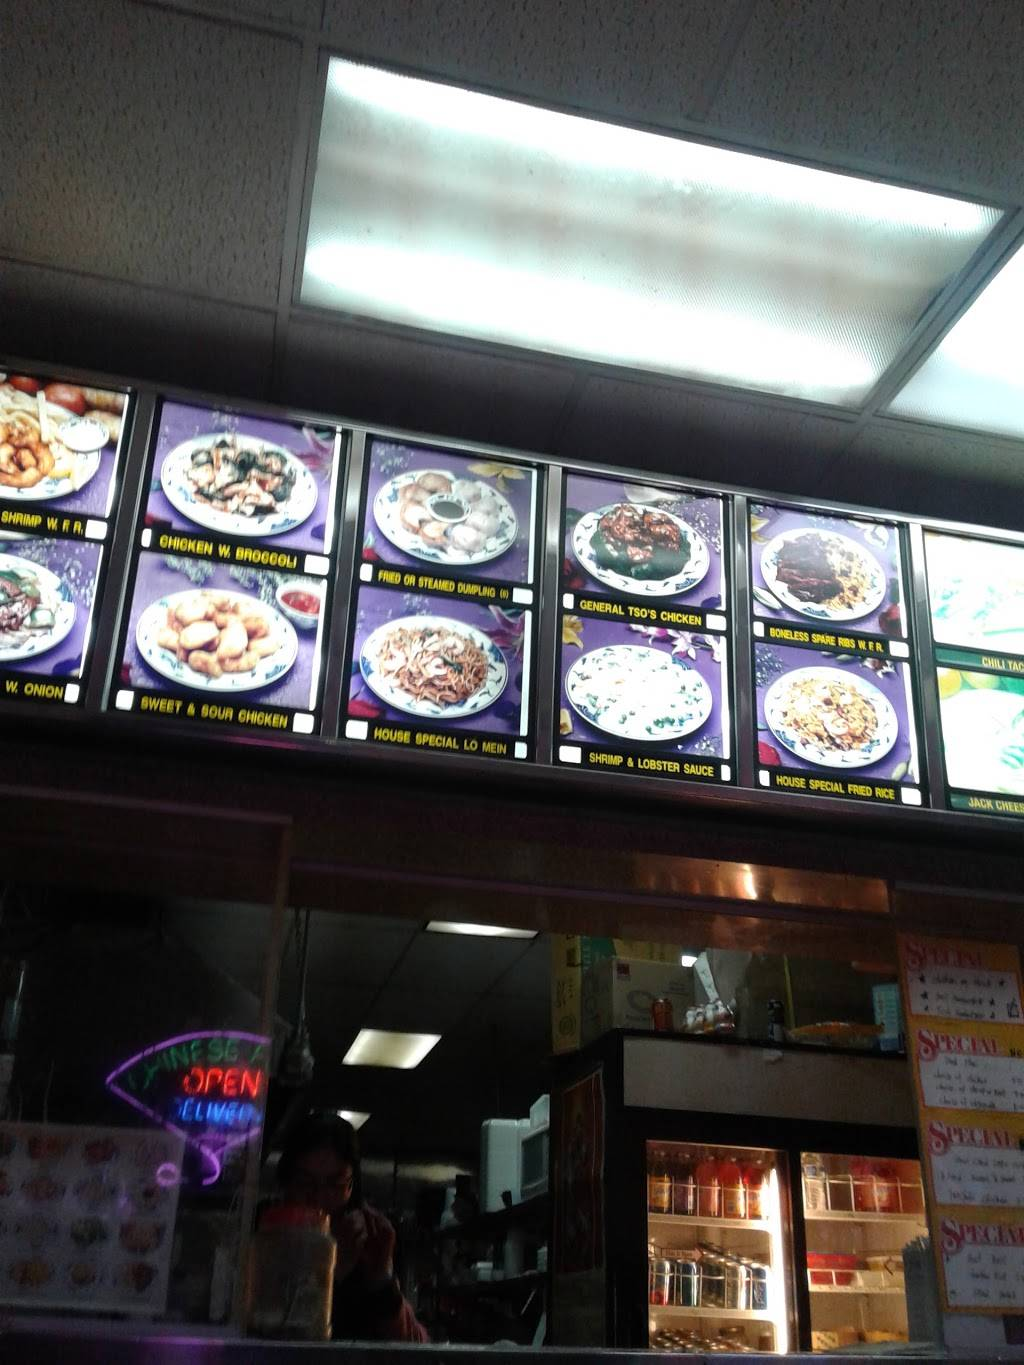 Empire | meal takeaway | 617 Wilson Ave, Brooklyn, NY 11207, USA | 7184552161 OR +1 718-455-2161